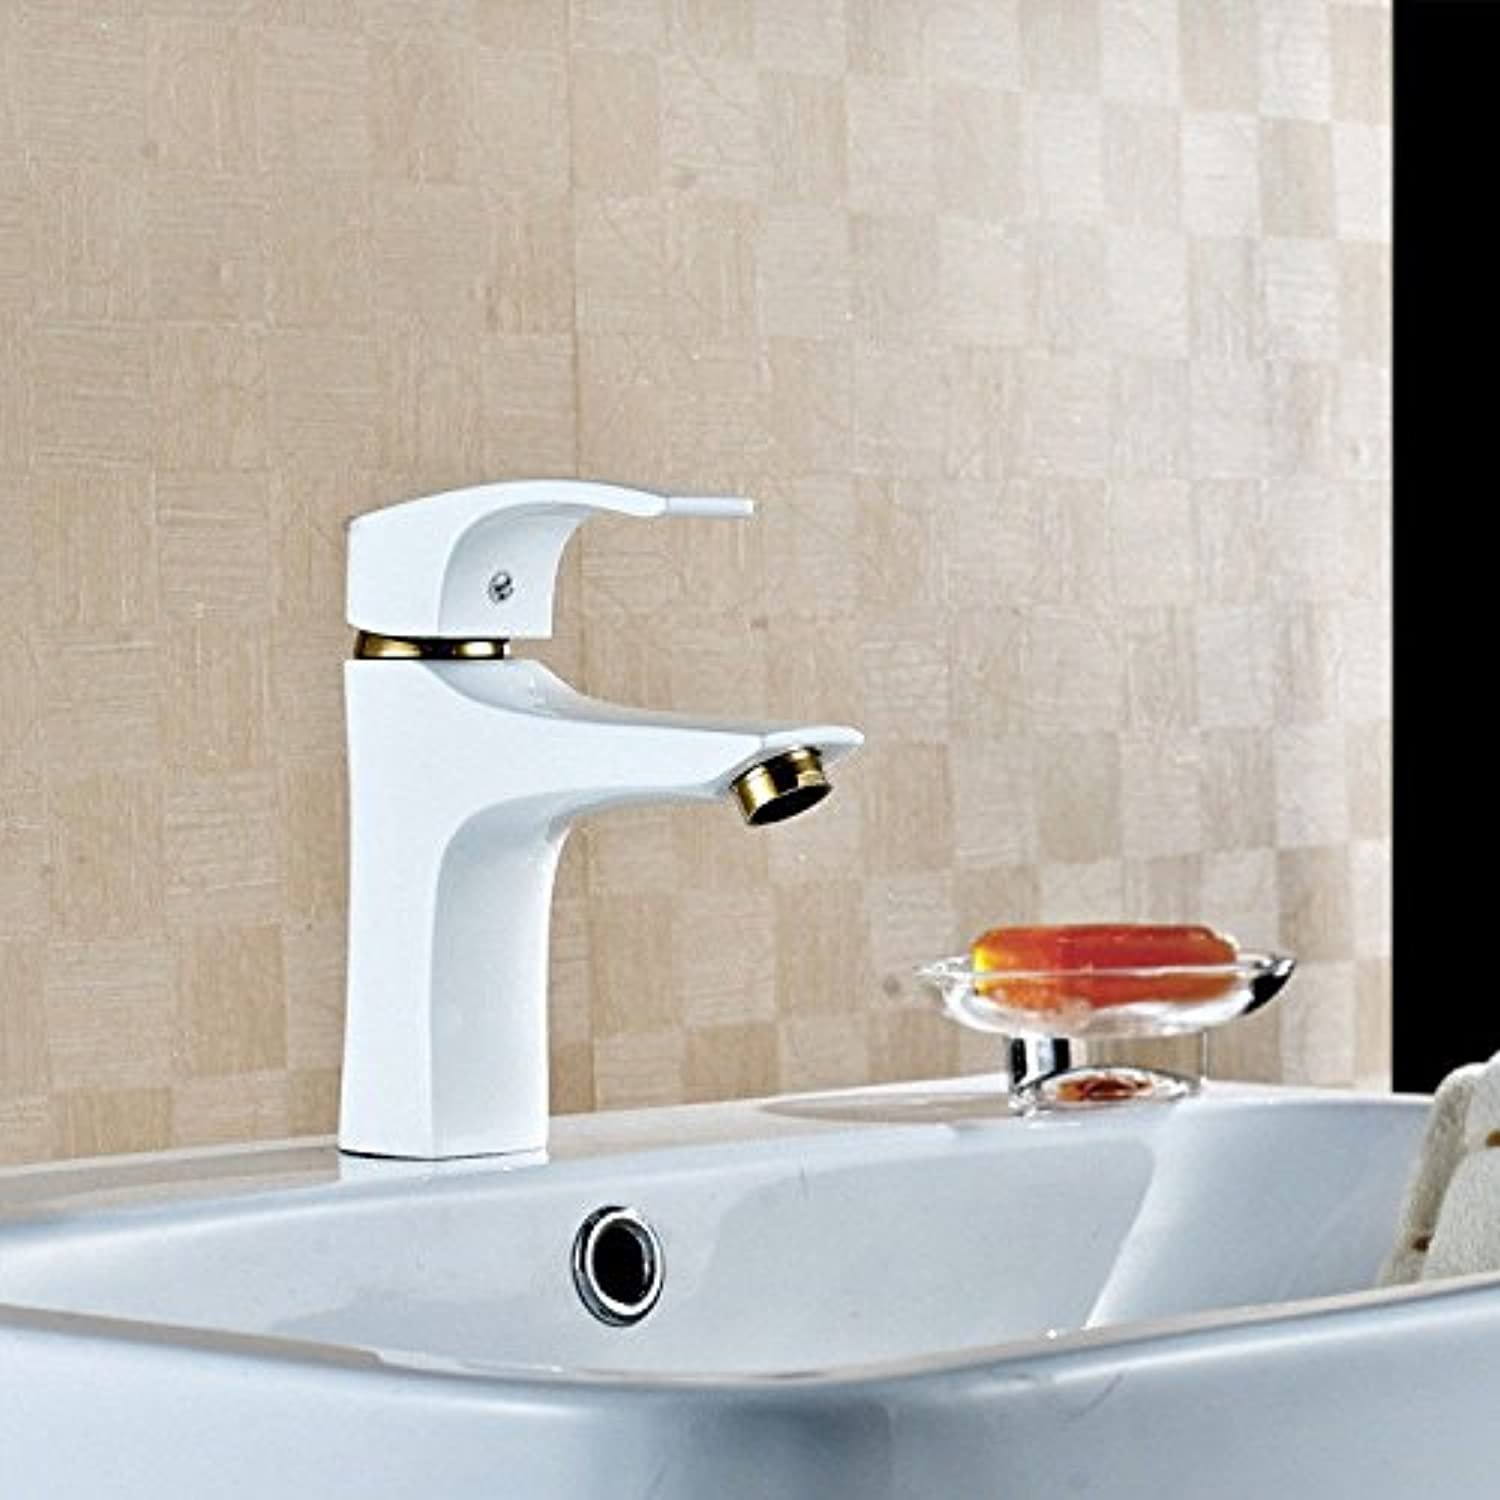 AQMMi Bathroom Sink Faucet Basin Mixer Tap Brass White Basin Sink Tap Bathroom Bar Faucet